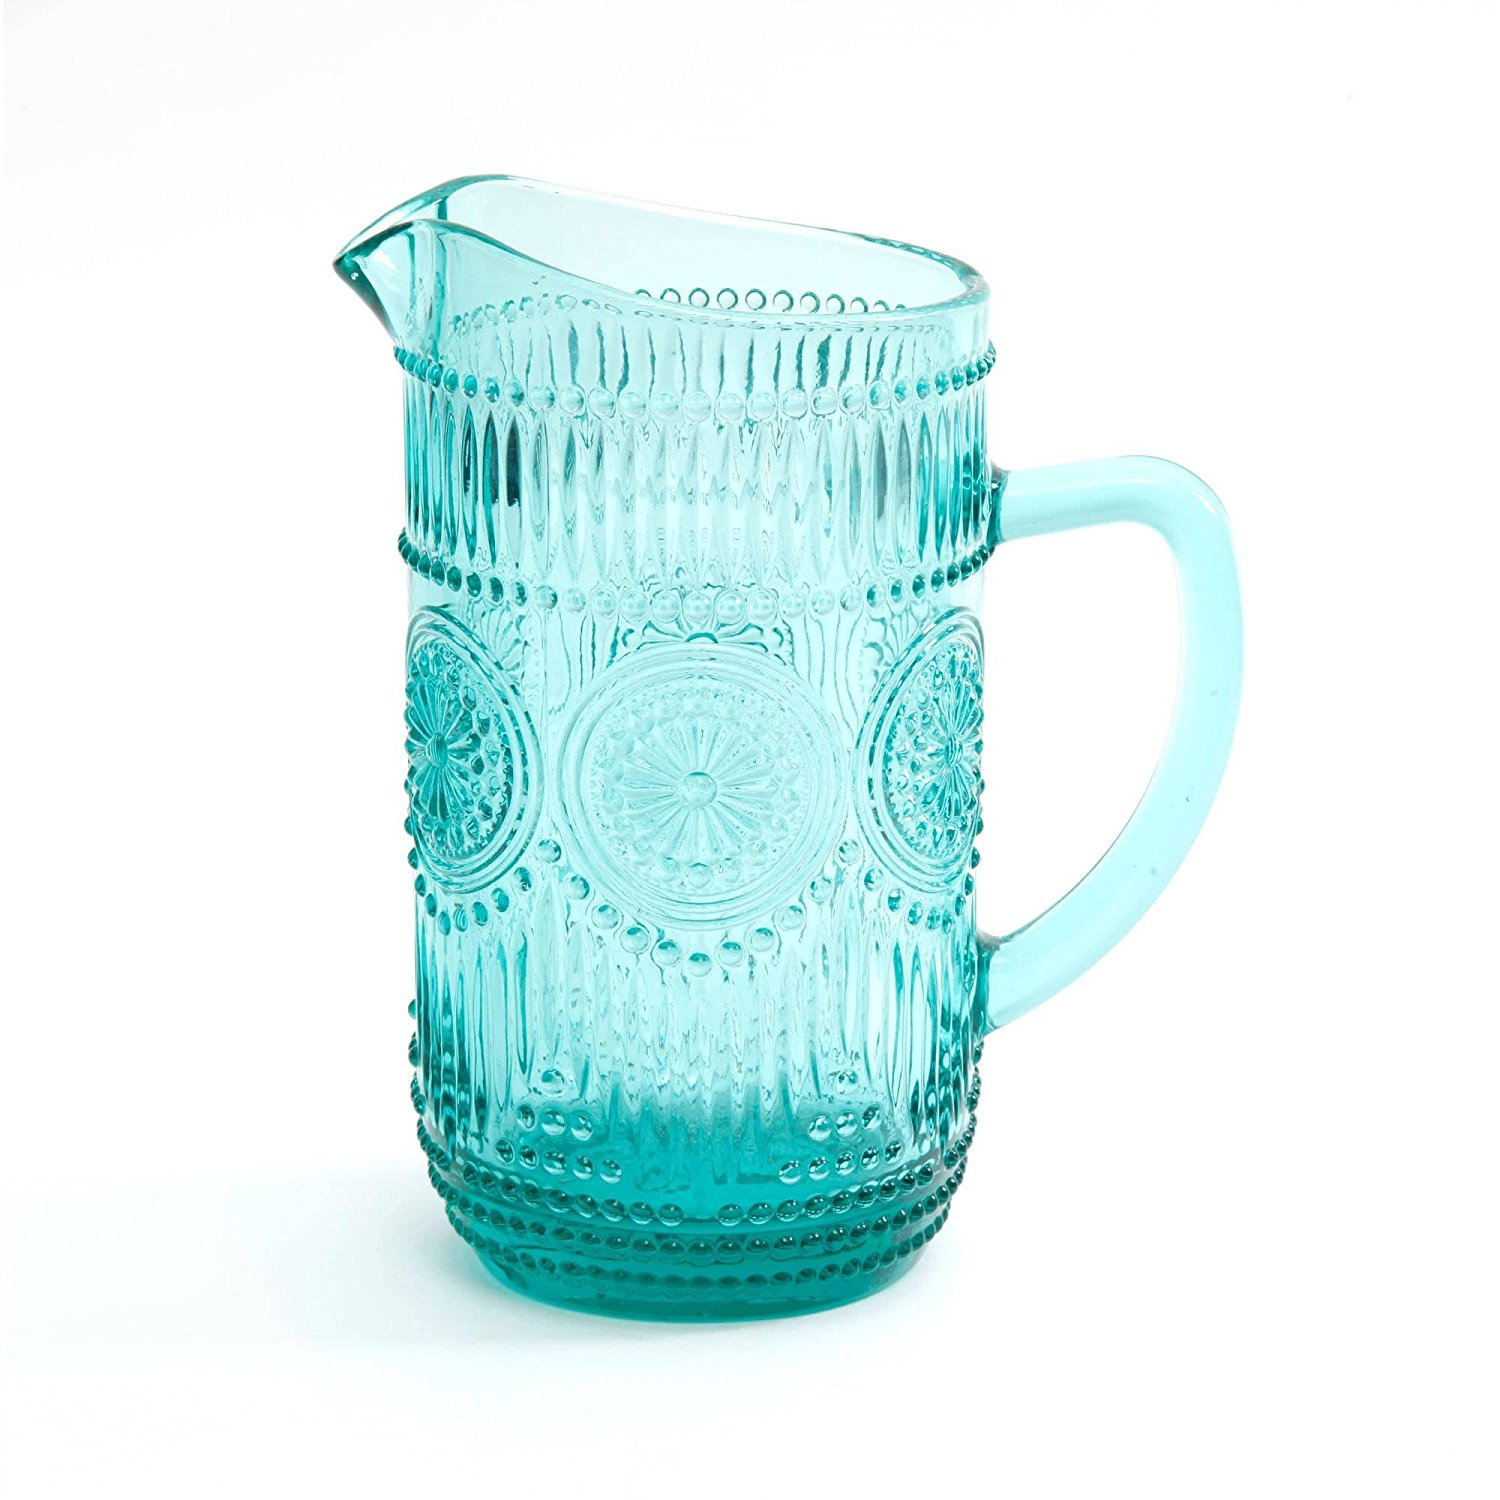 The Pioneer Woman Adeline 1.59-Liter Glass Pitcher, Turquoise, blue color By poineer